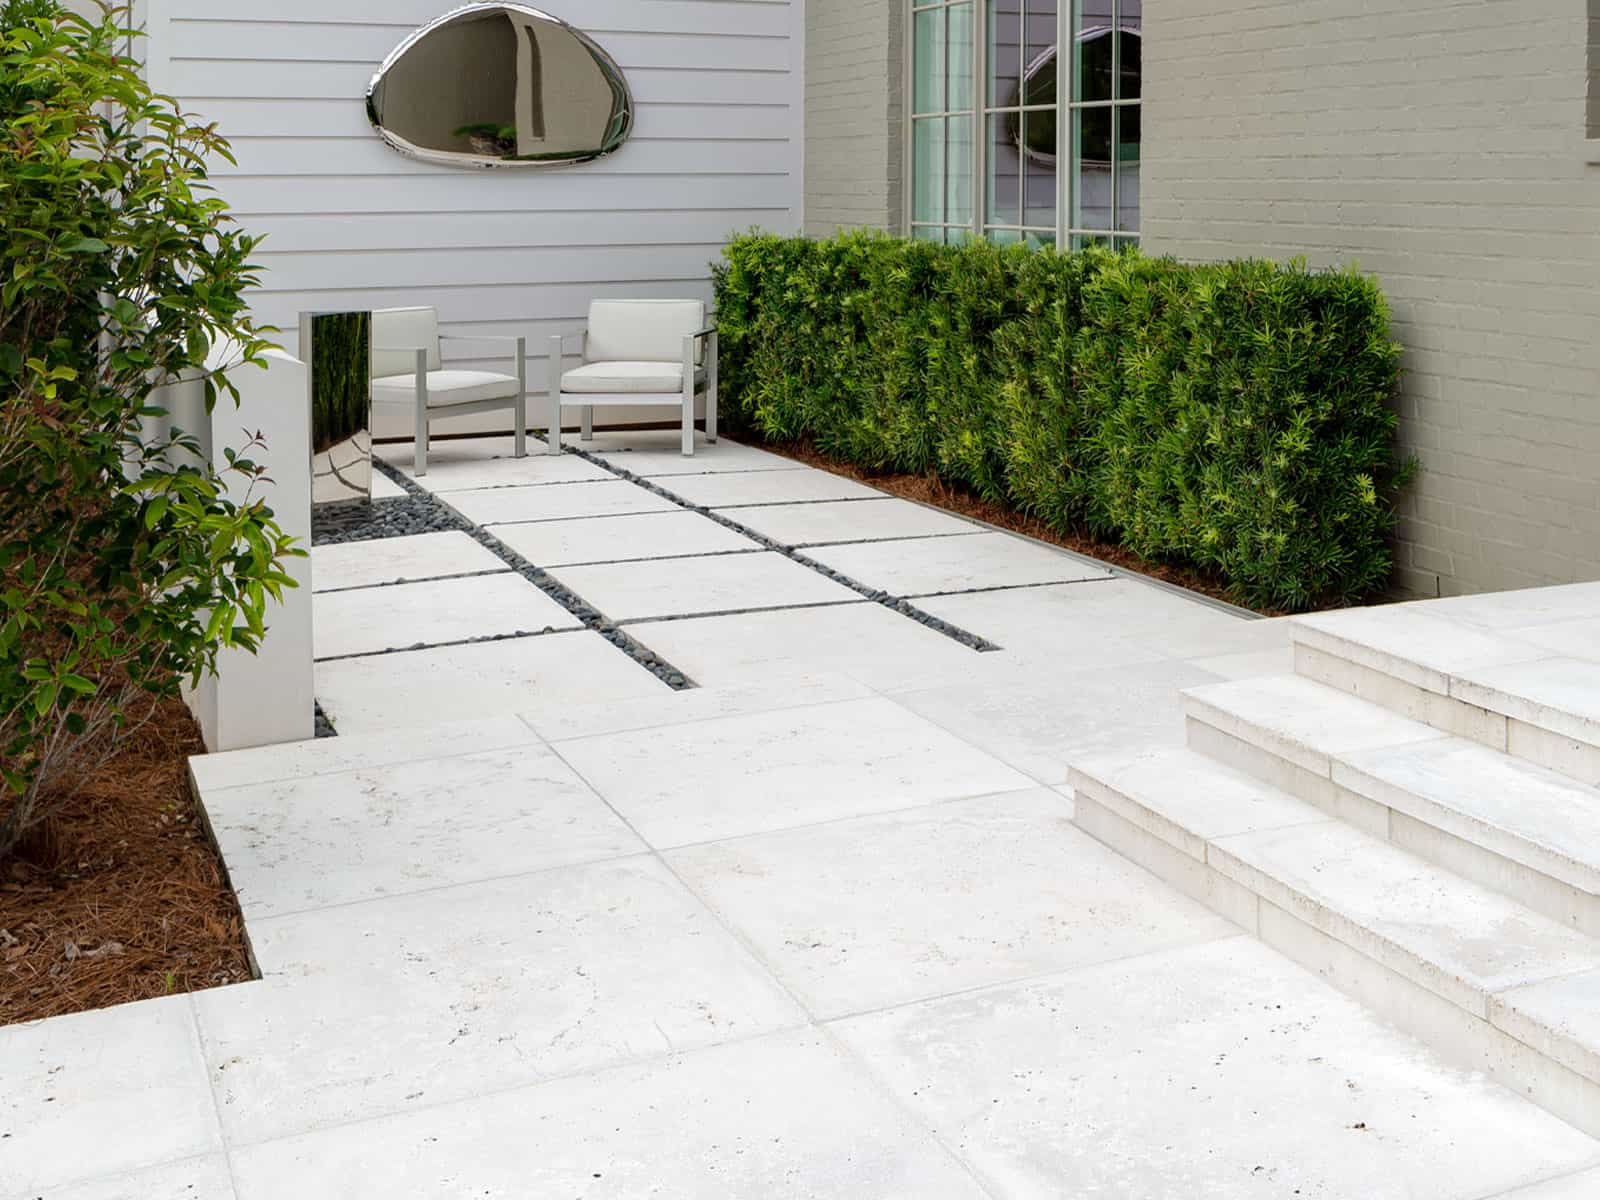 Concrete pavers with gravel joints